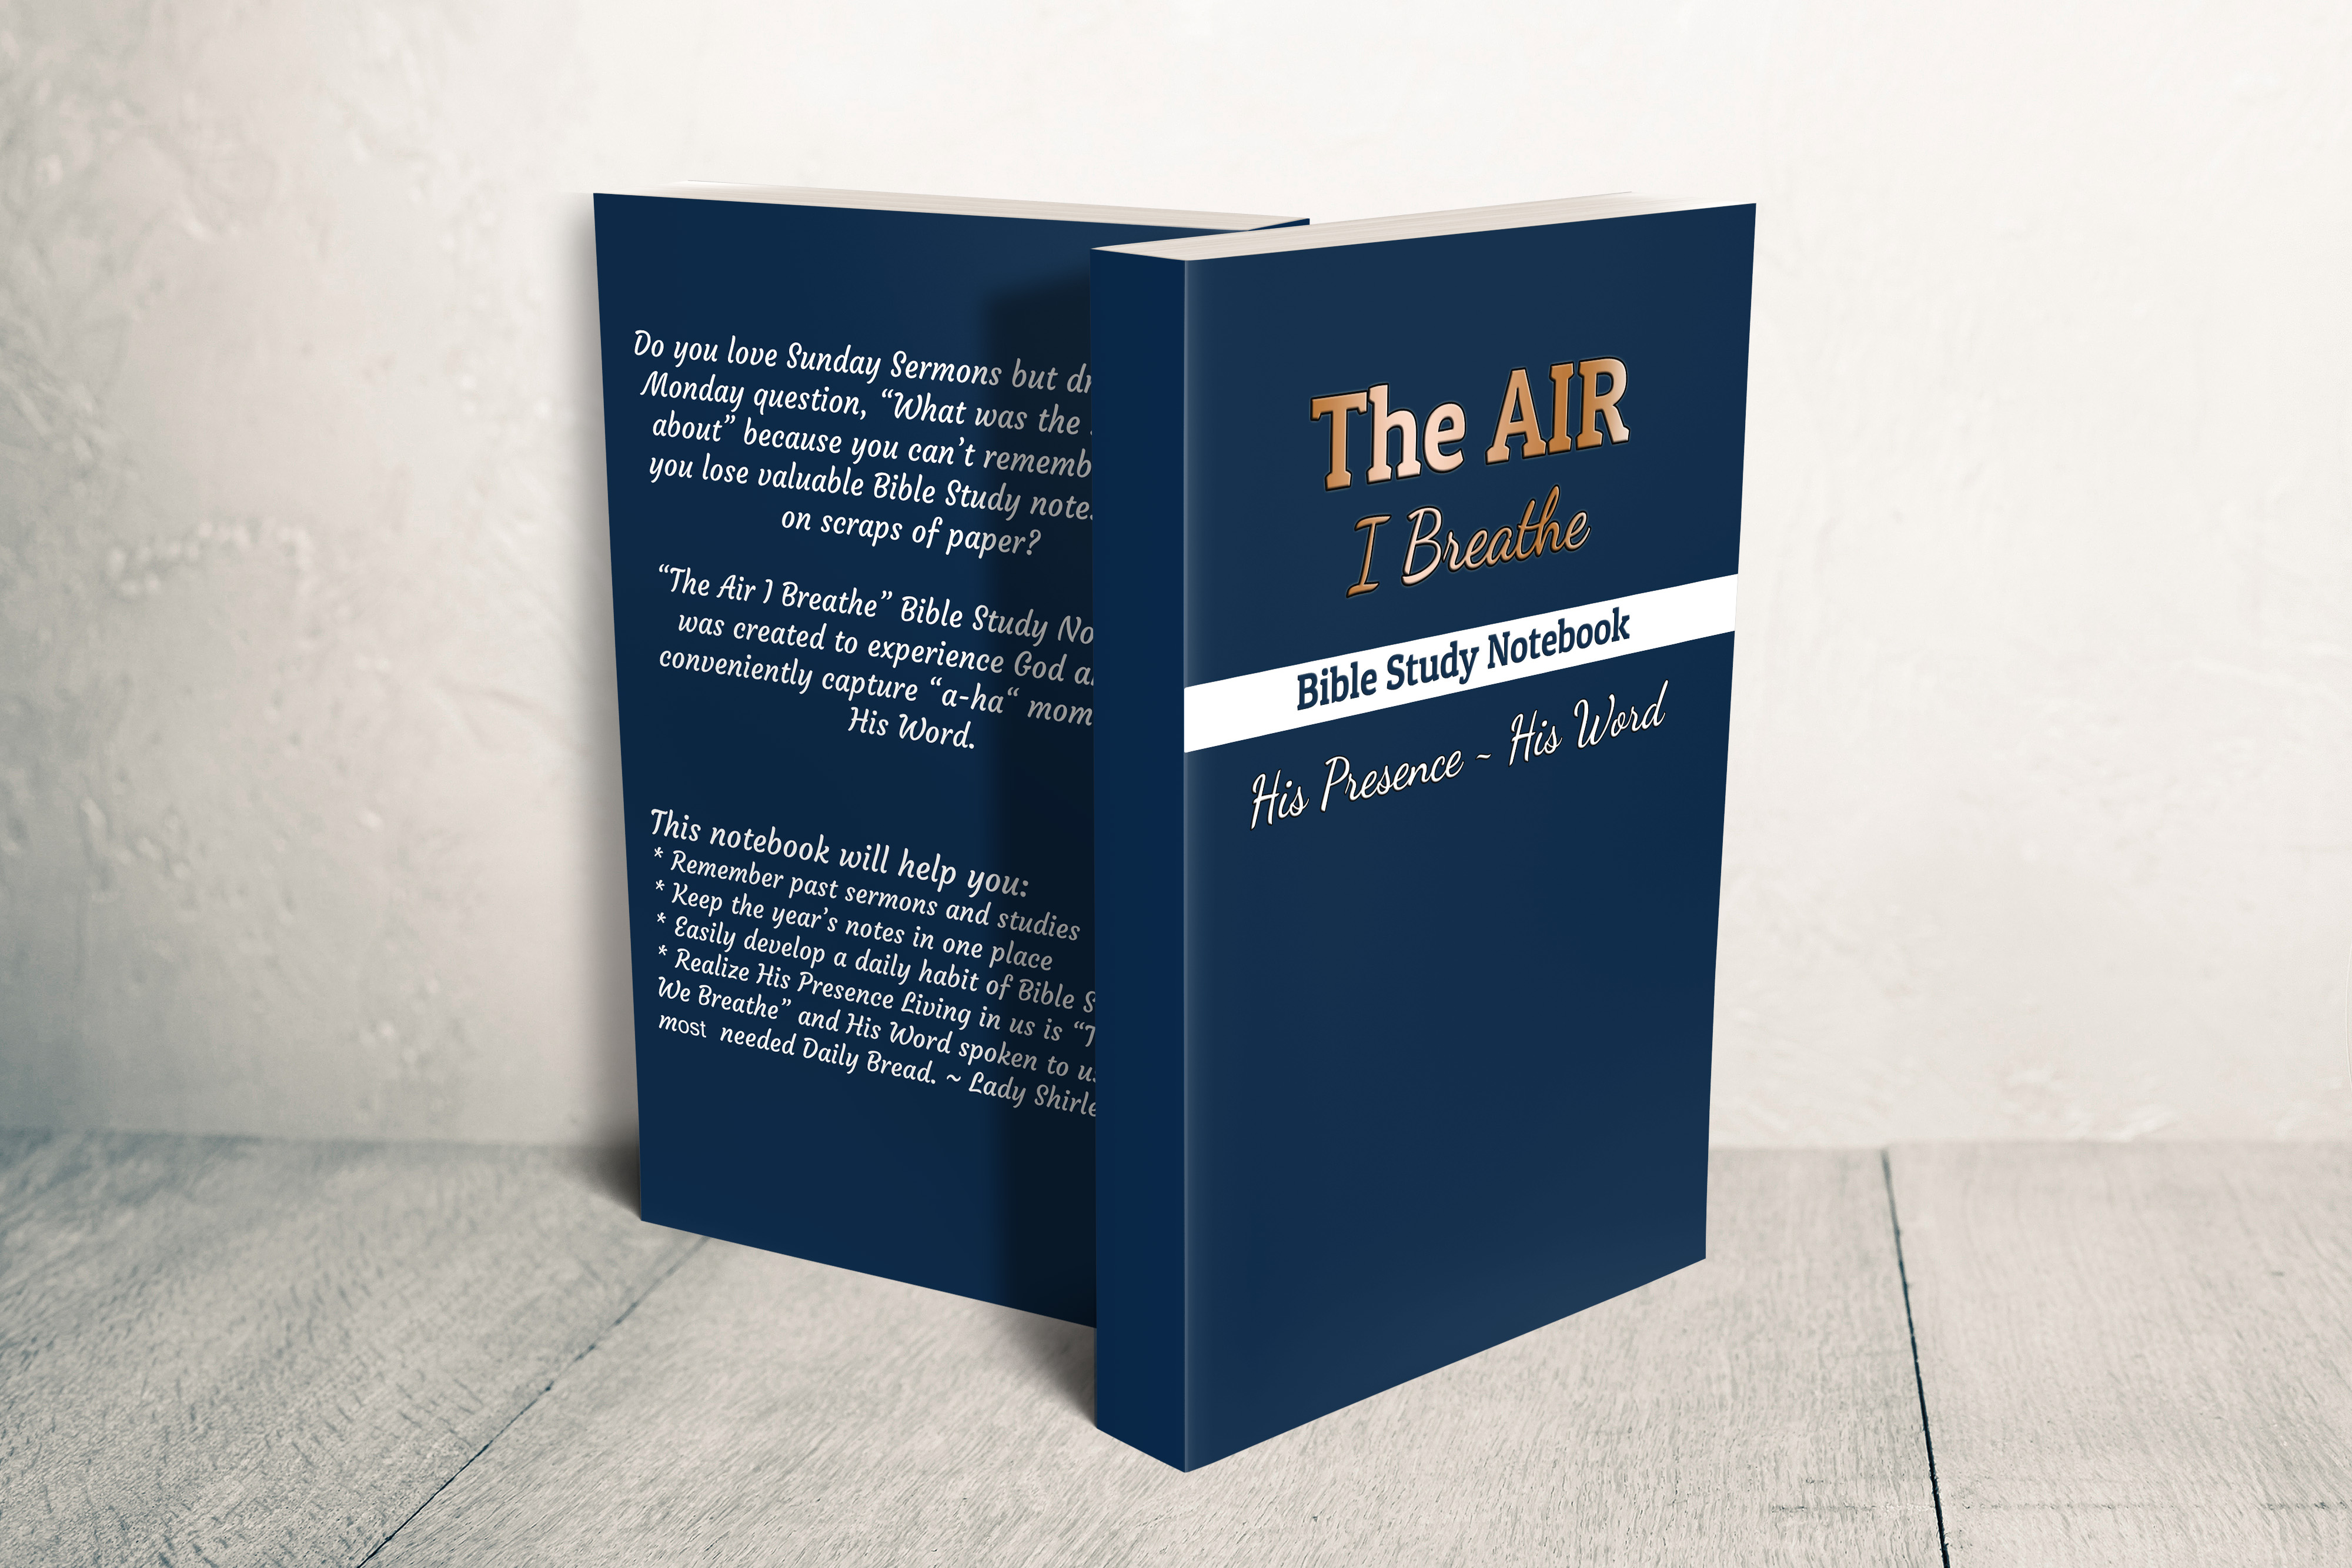 The Air I Breathe Bible Study Notebook